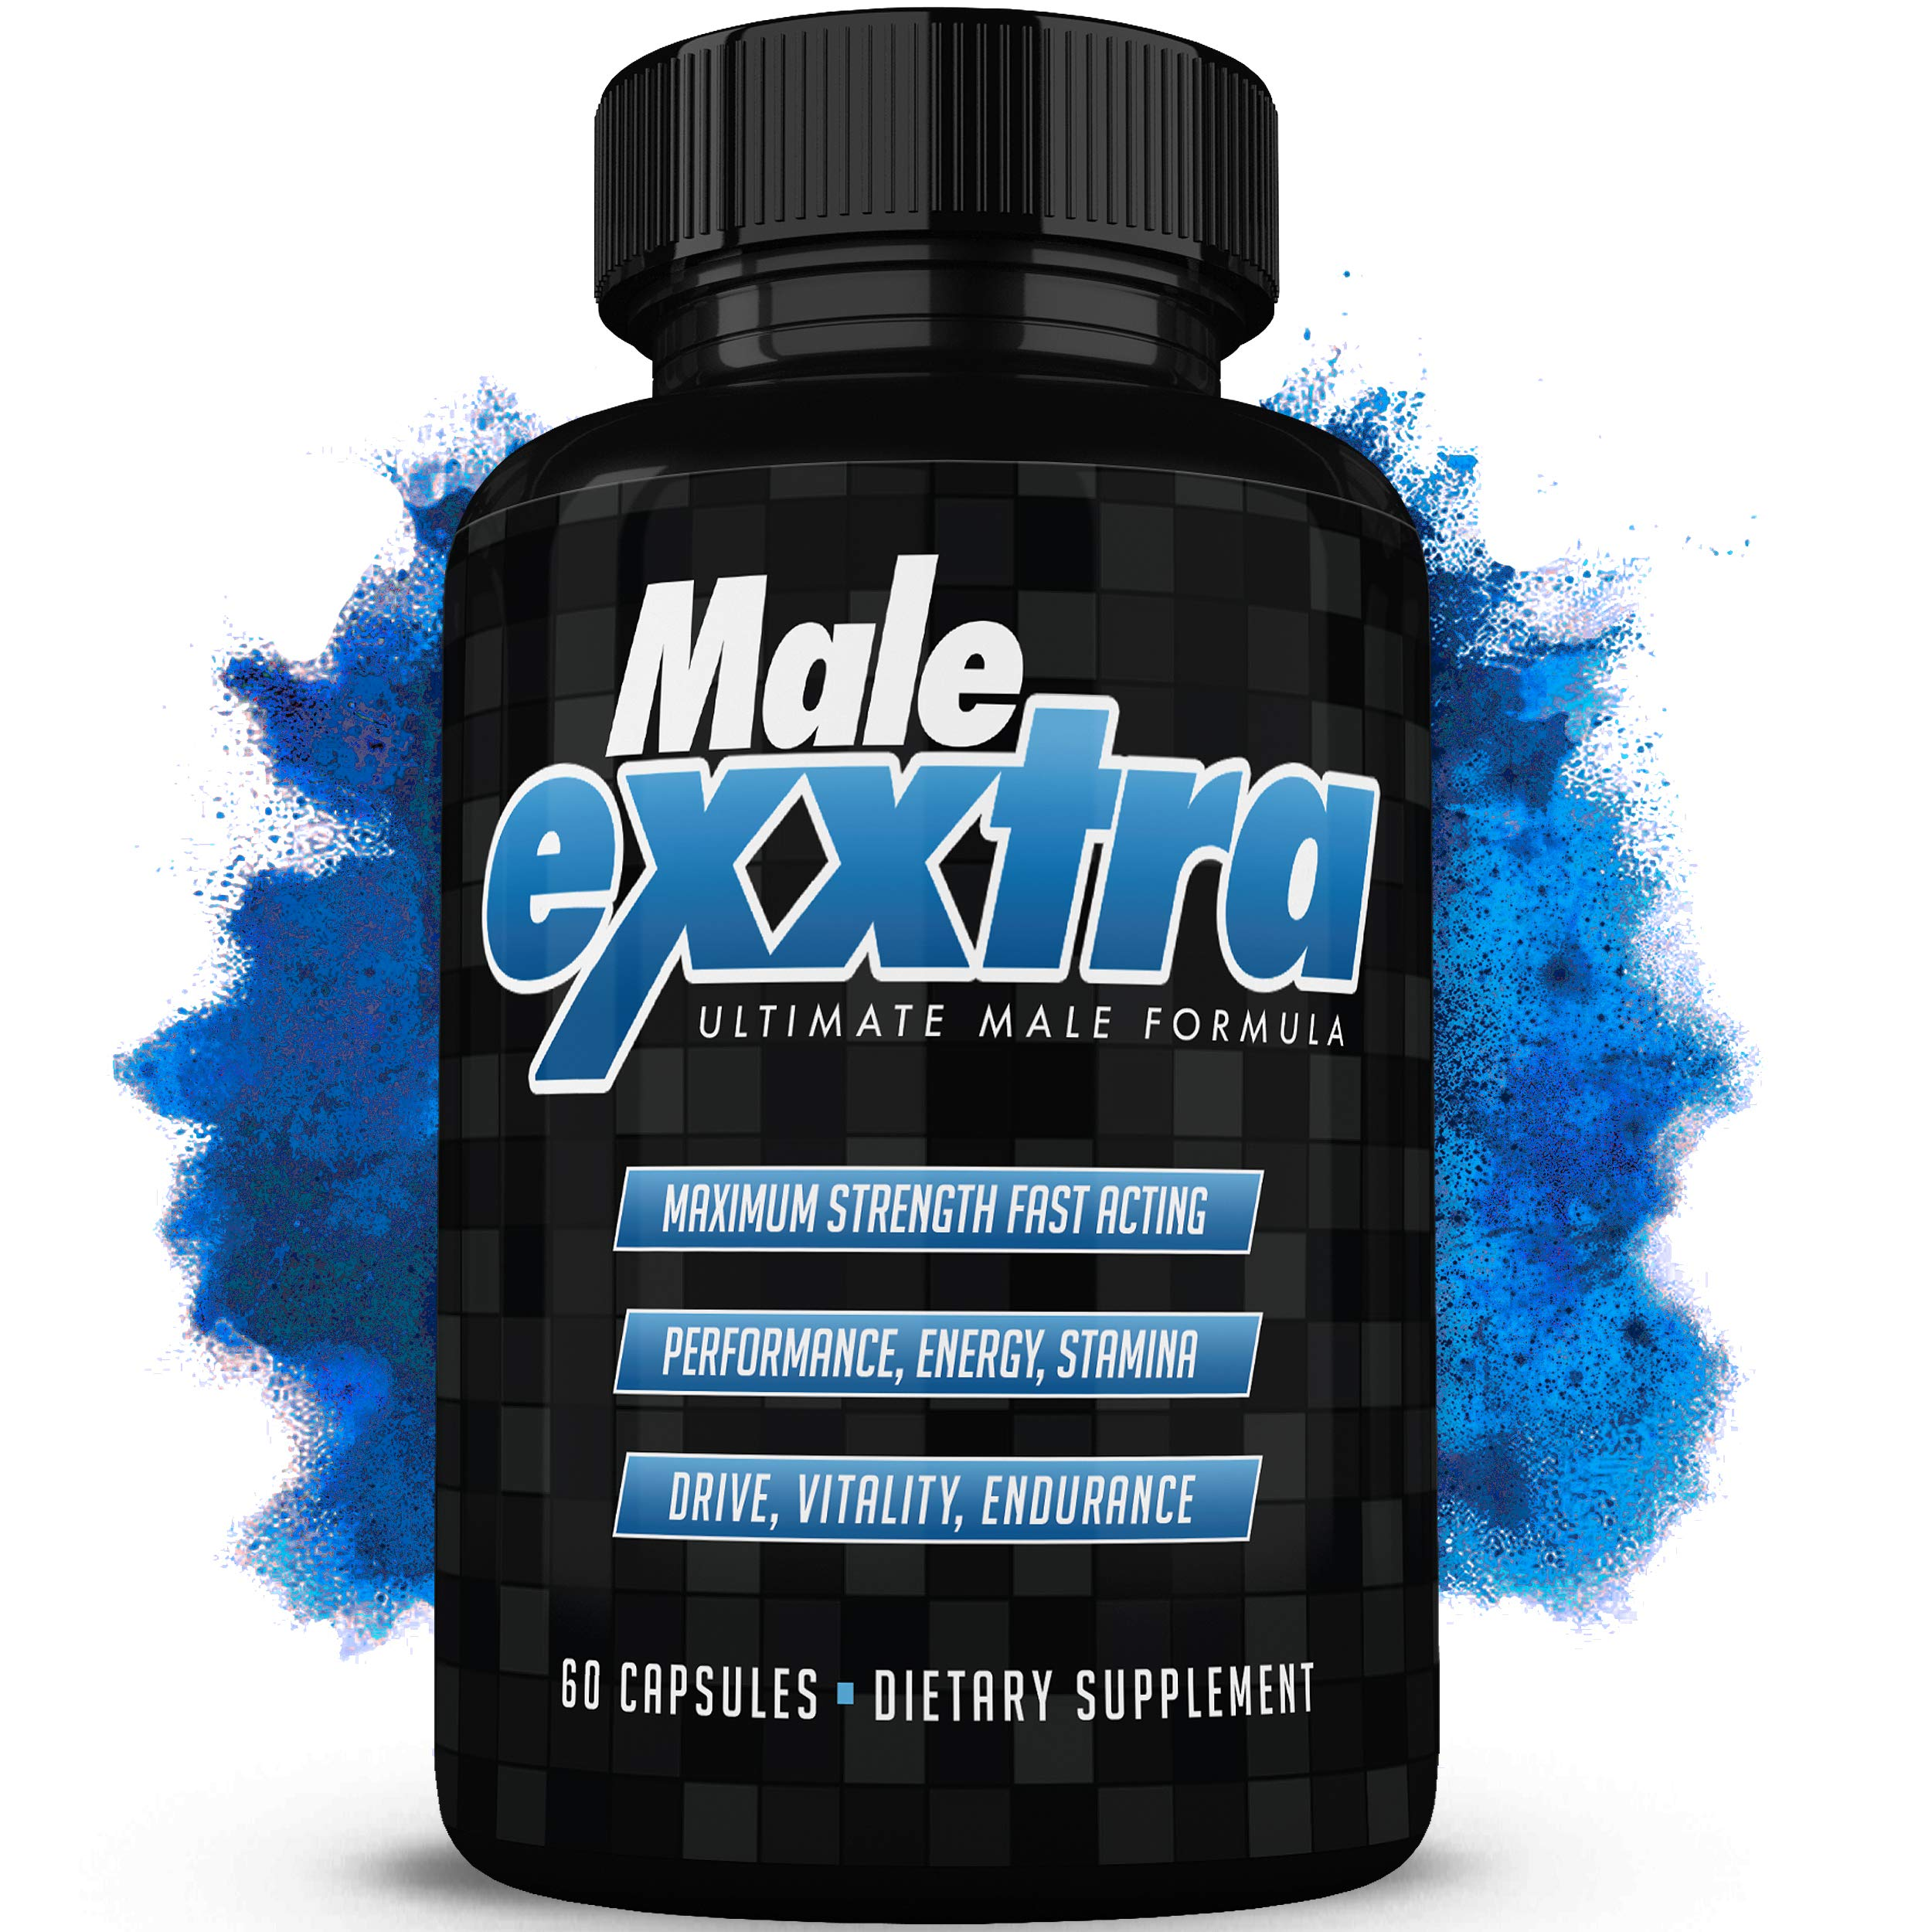 Male Exxtra Ultimate Enhancing Pills - Enlargement Formula Promotes Size, Strength, Energy. All Natural Performance Supplement - 1 Month Supply - Made in USA by Osyris Nutrition Lab